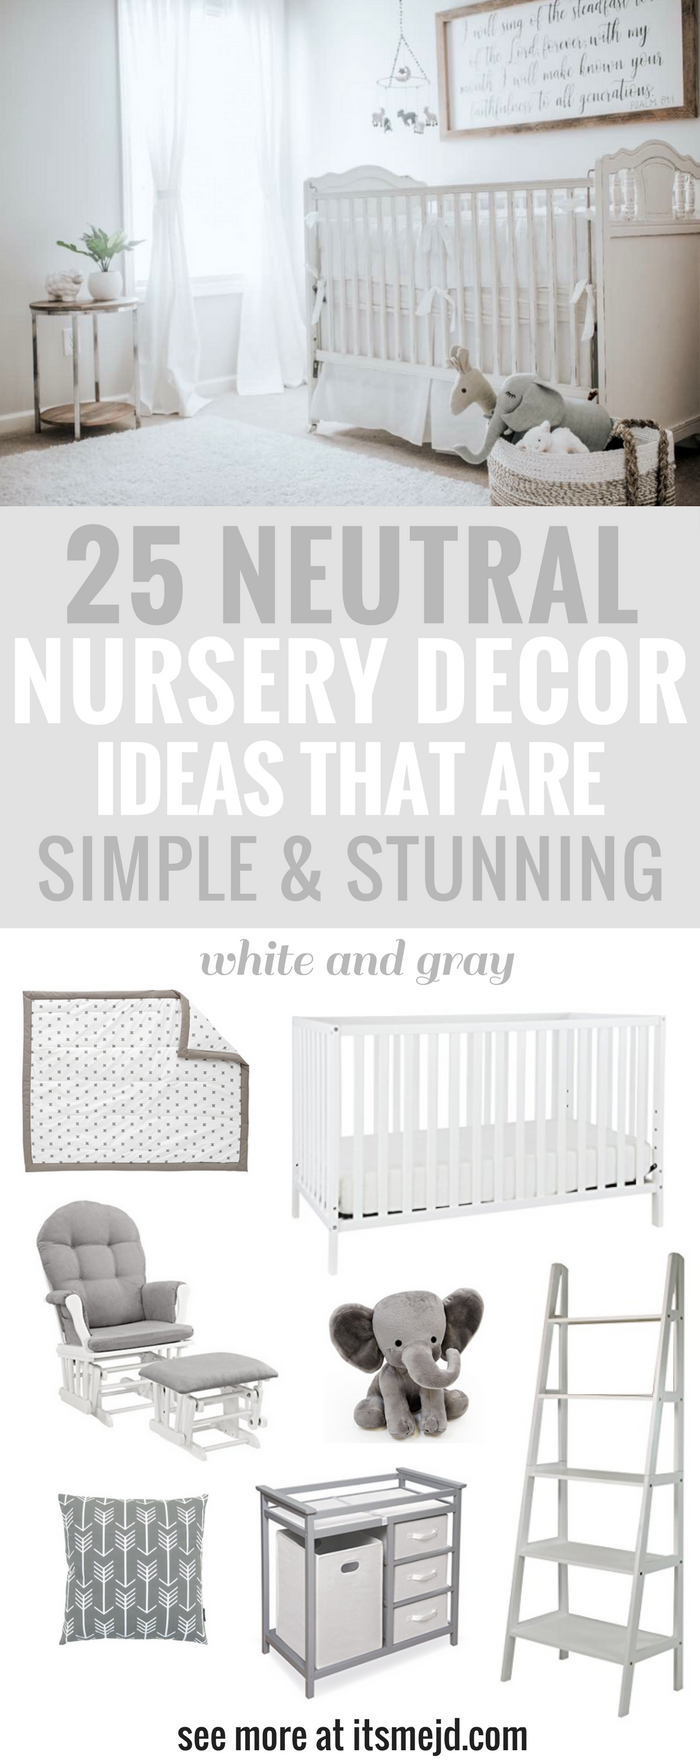 Neutral Nursery Decor Ideas That Are Simple Yet Stunning The Color Gray And White